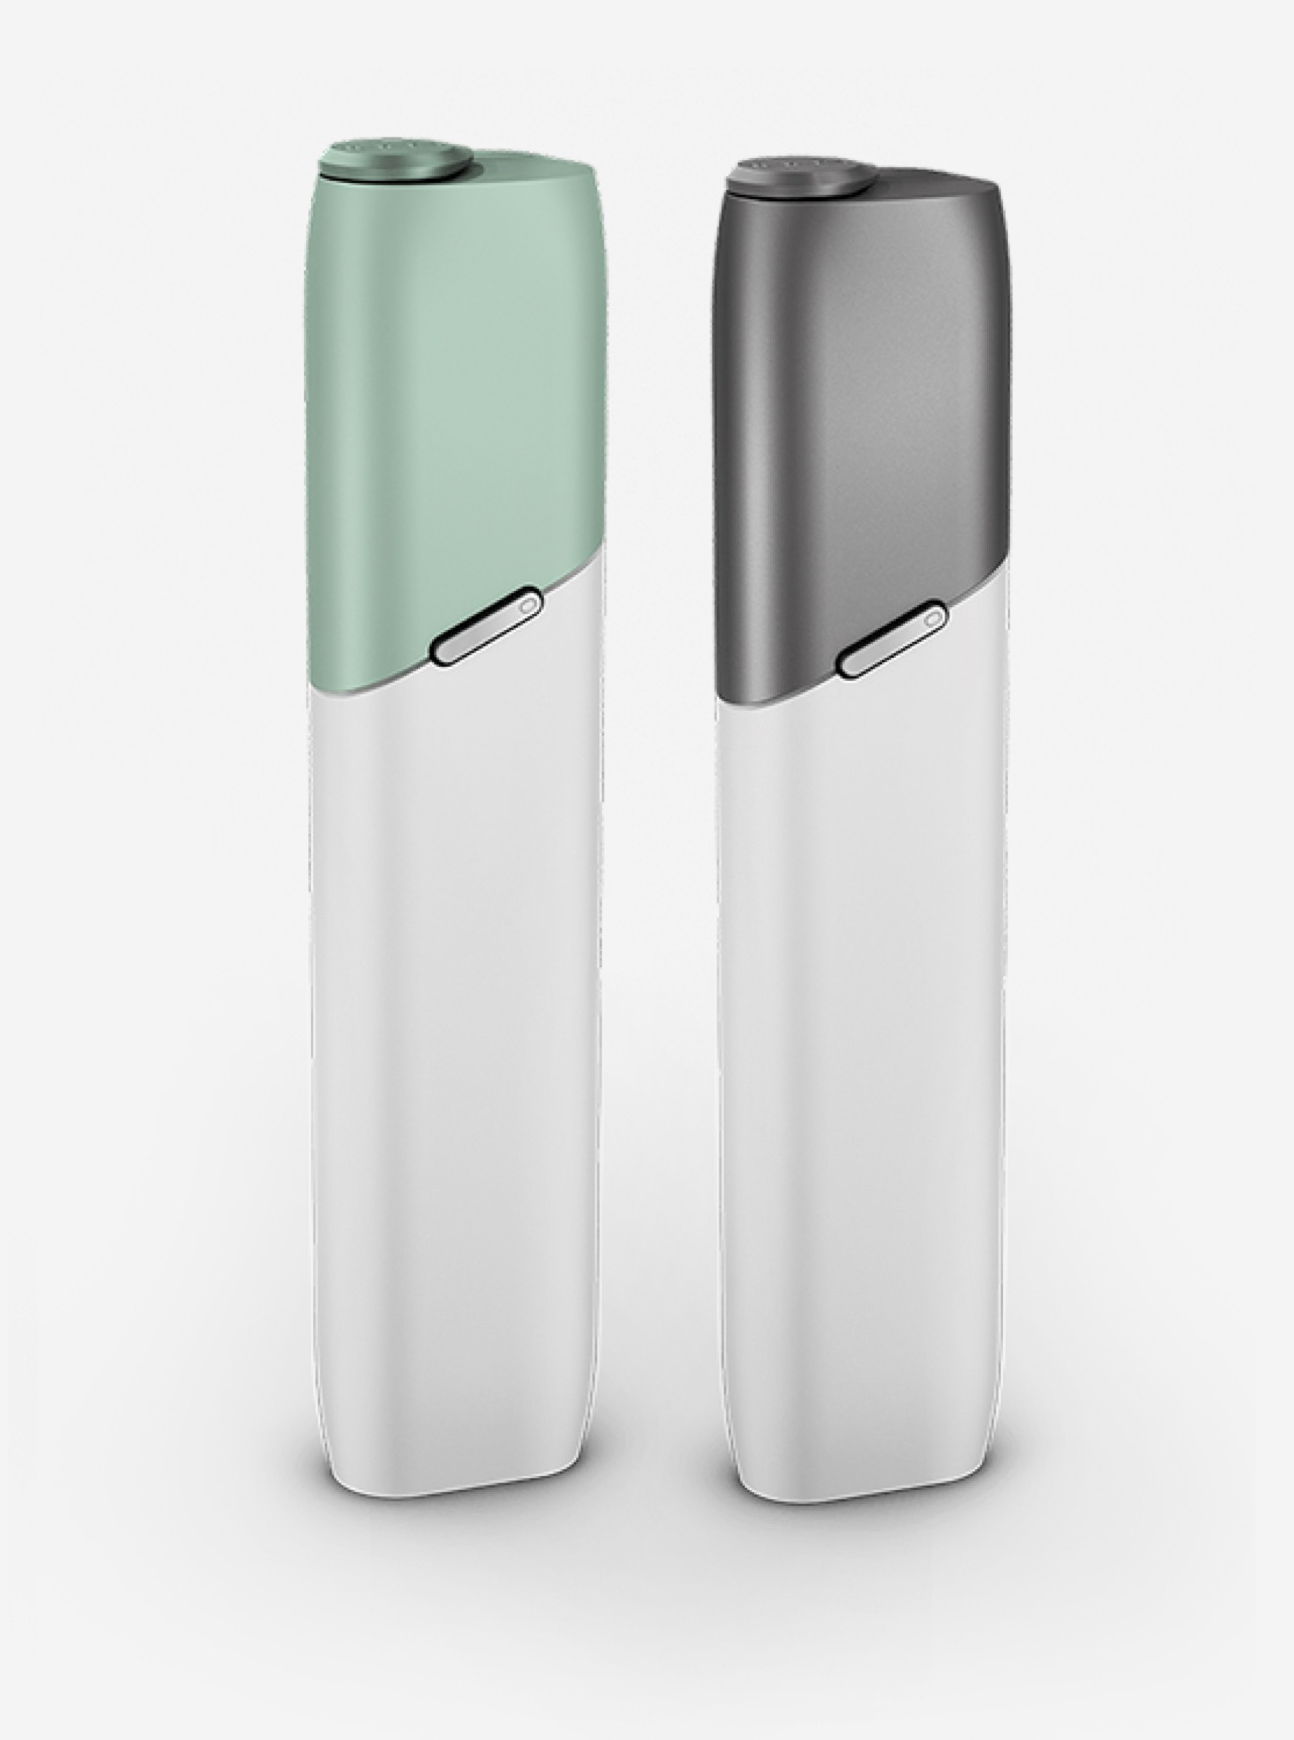 IQOS – New Smoke-Free Electronic Device from PMI